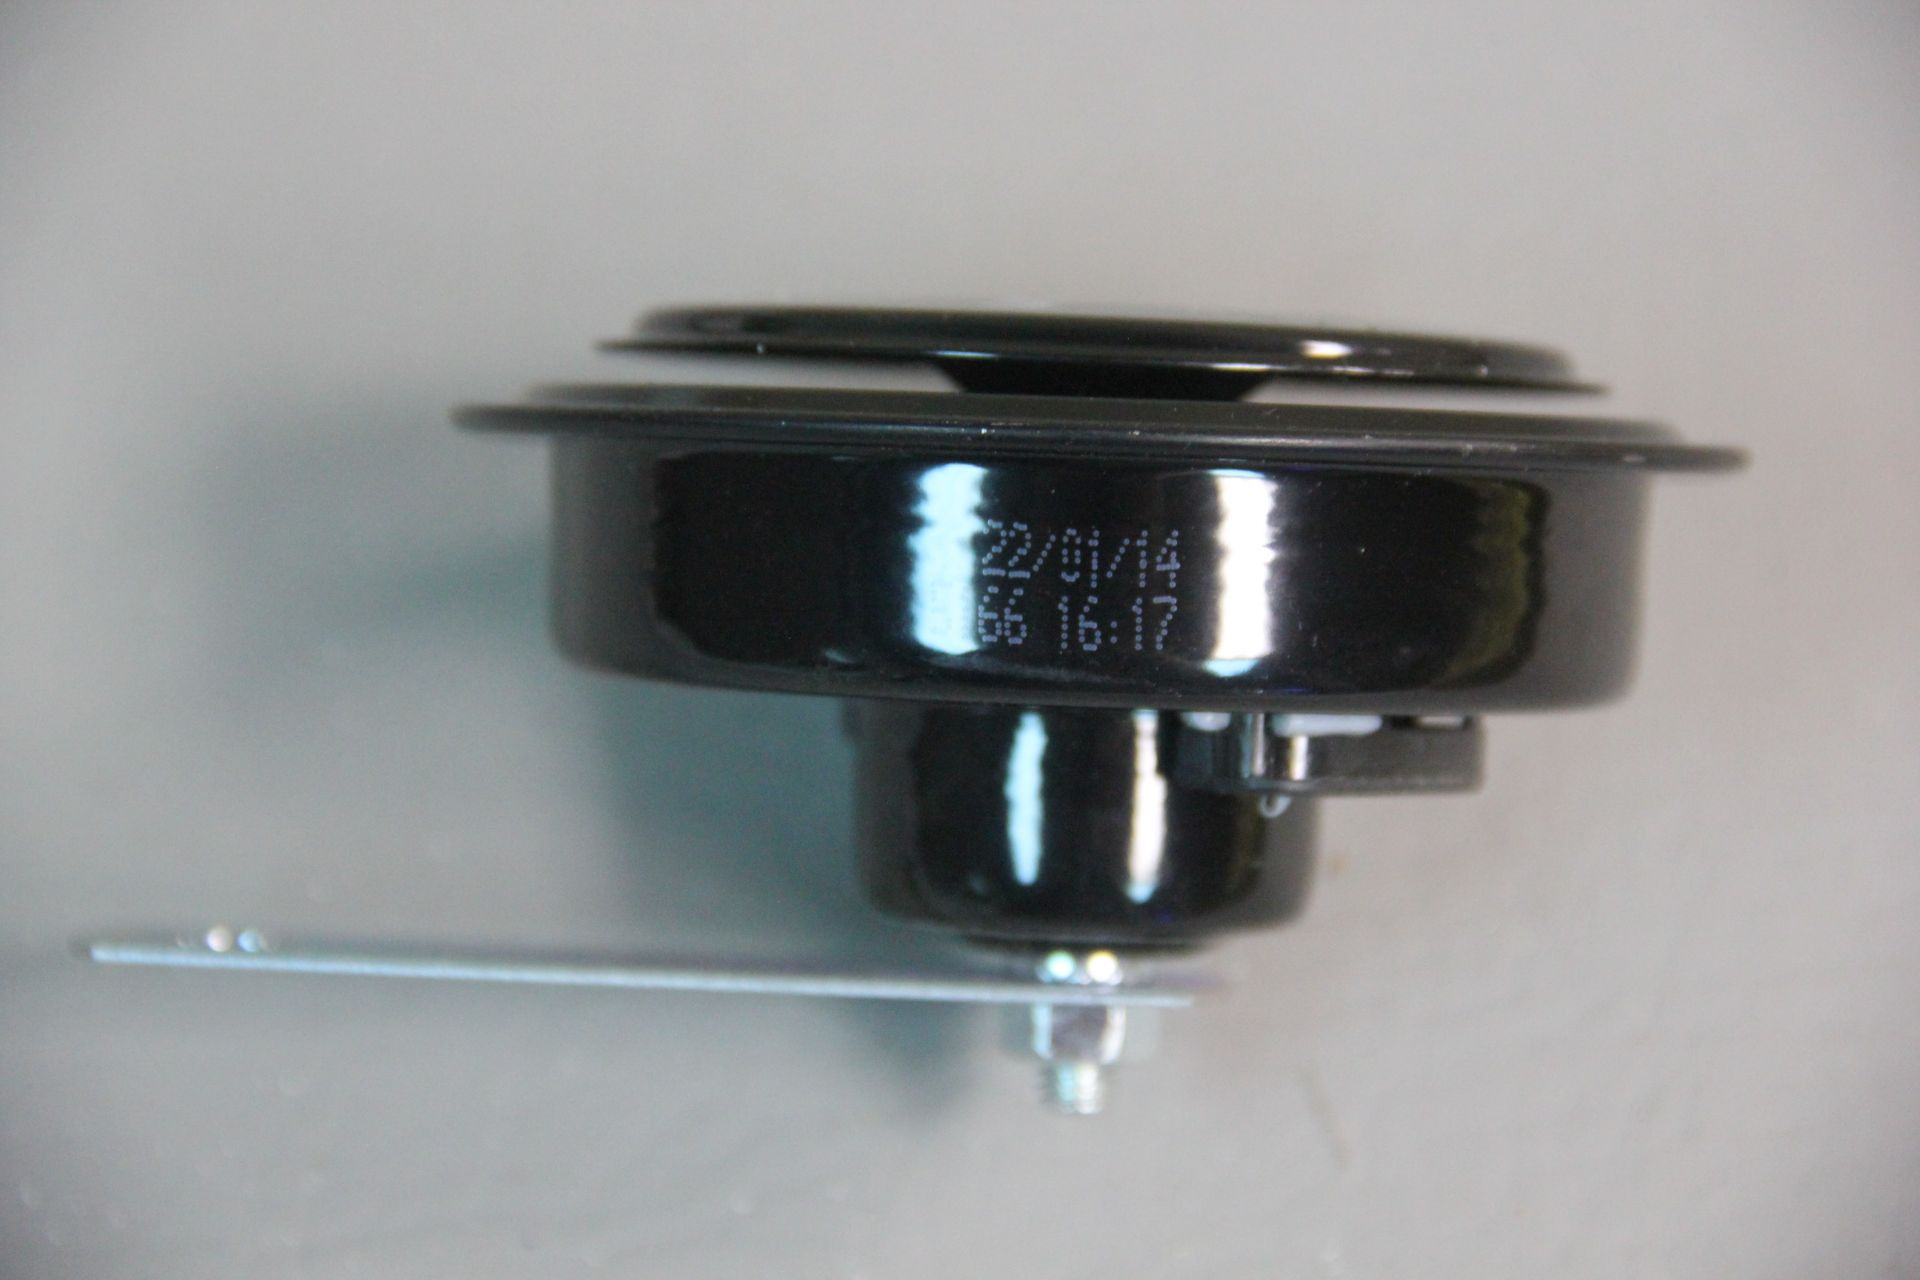 NEW SEGER INDUSTRIAL DISC SAFETY HORN - Image 3 of 4